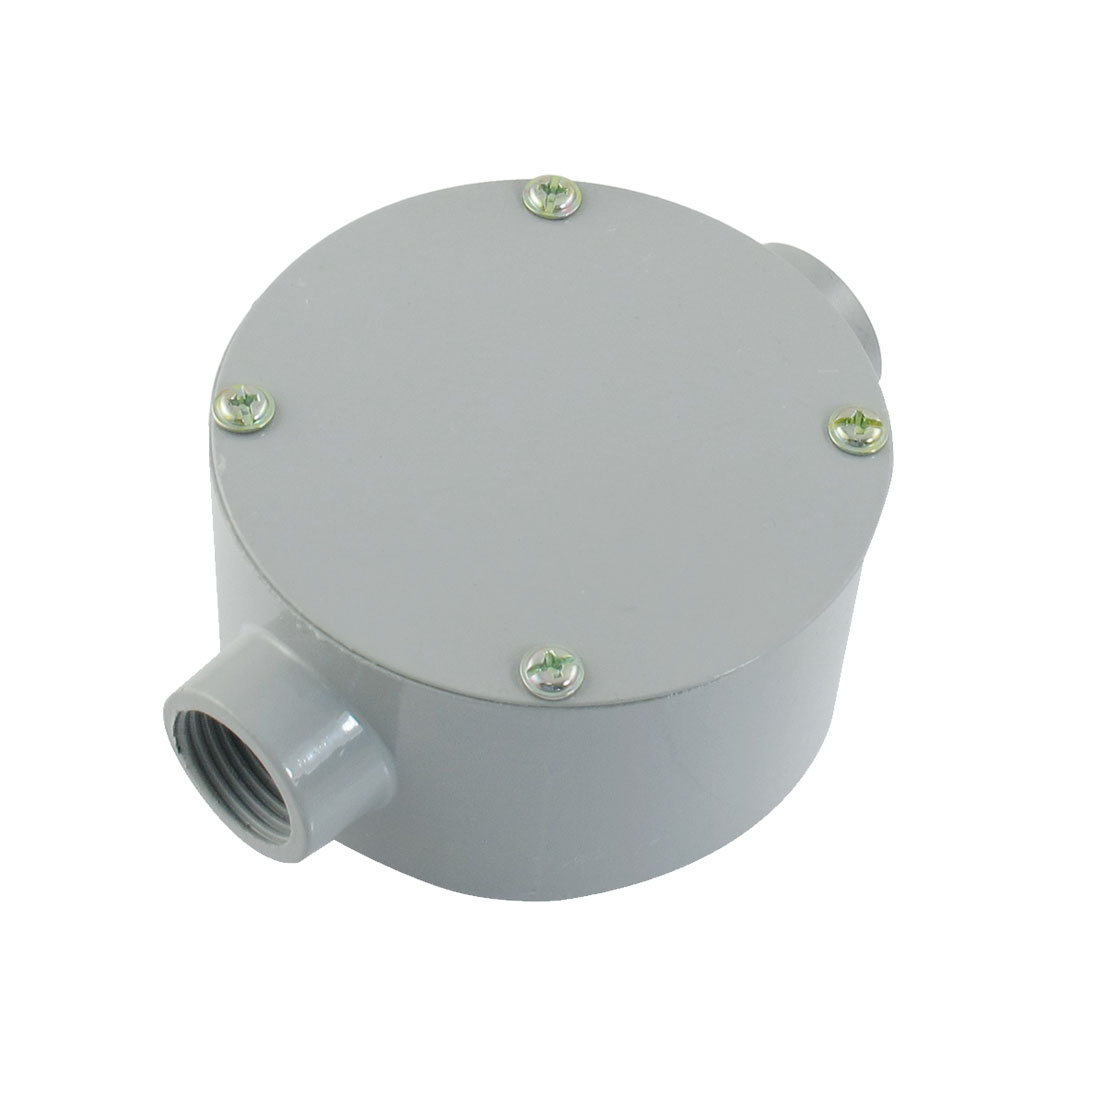 "G1/2"" Dia. Two Straight Hole Connecting Metal Round Water-Proof Junction Box"